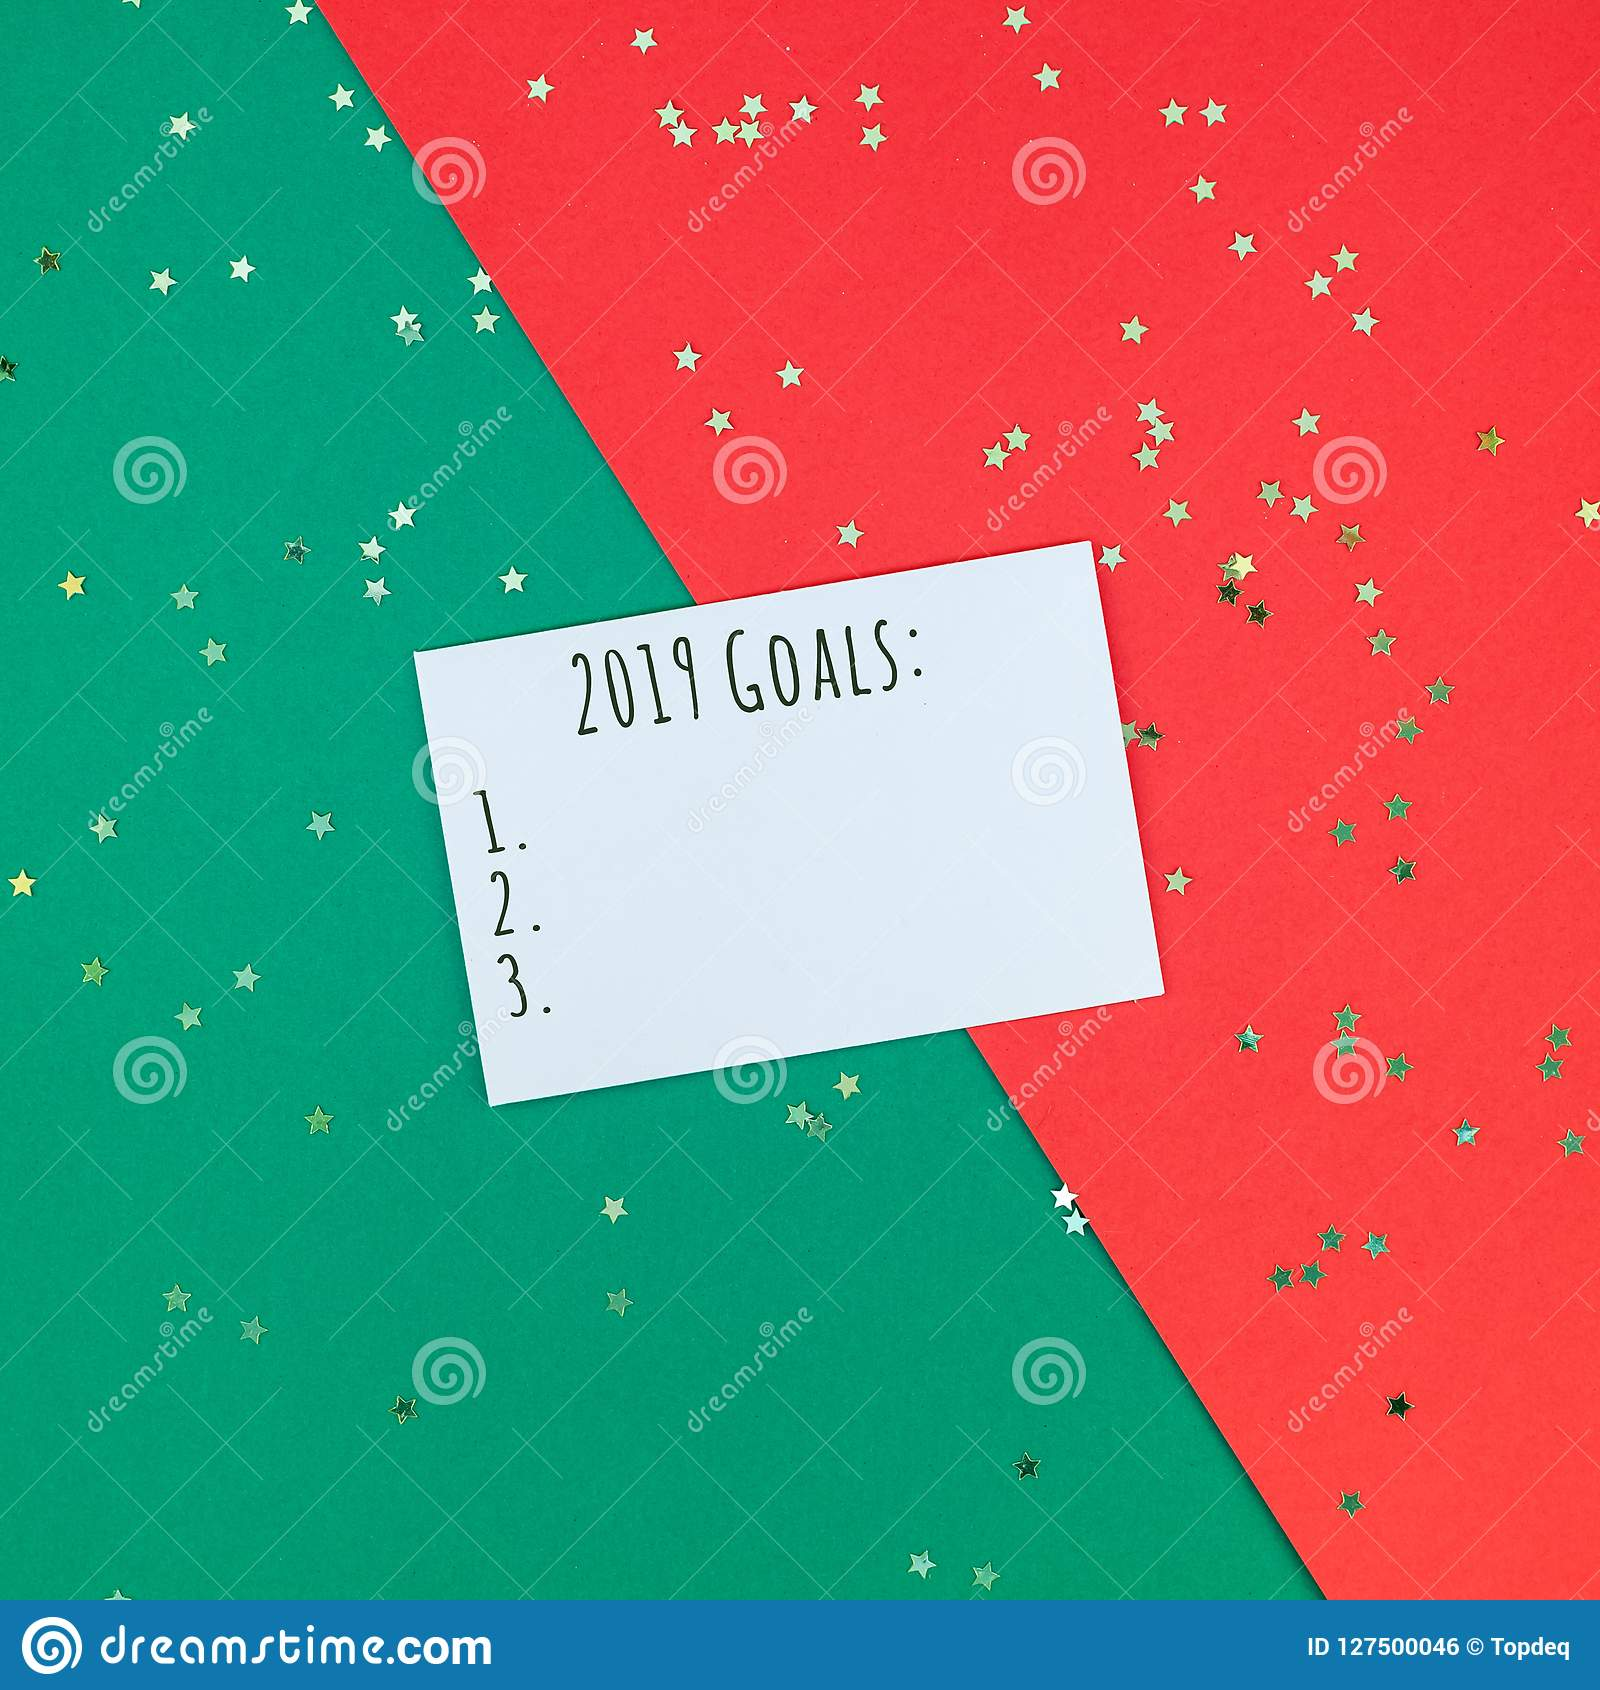 Christmas Greetings Letter.New Year Or Christmas Greeting Letter Mockup Stock Photo